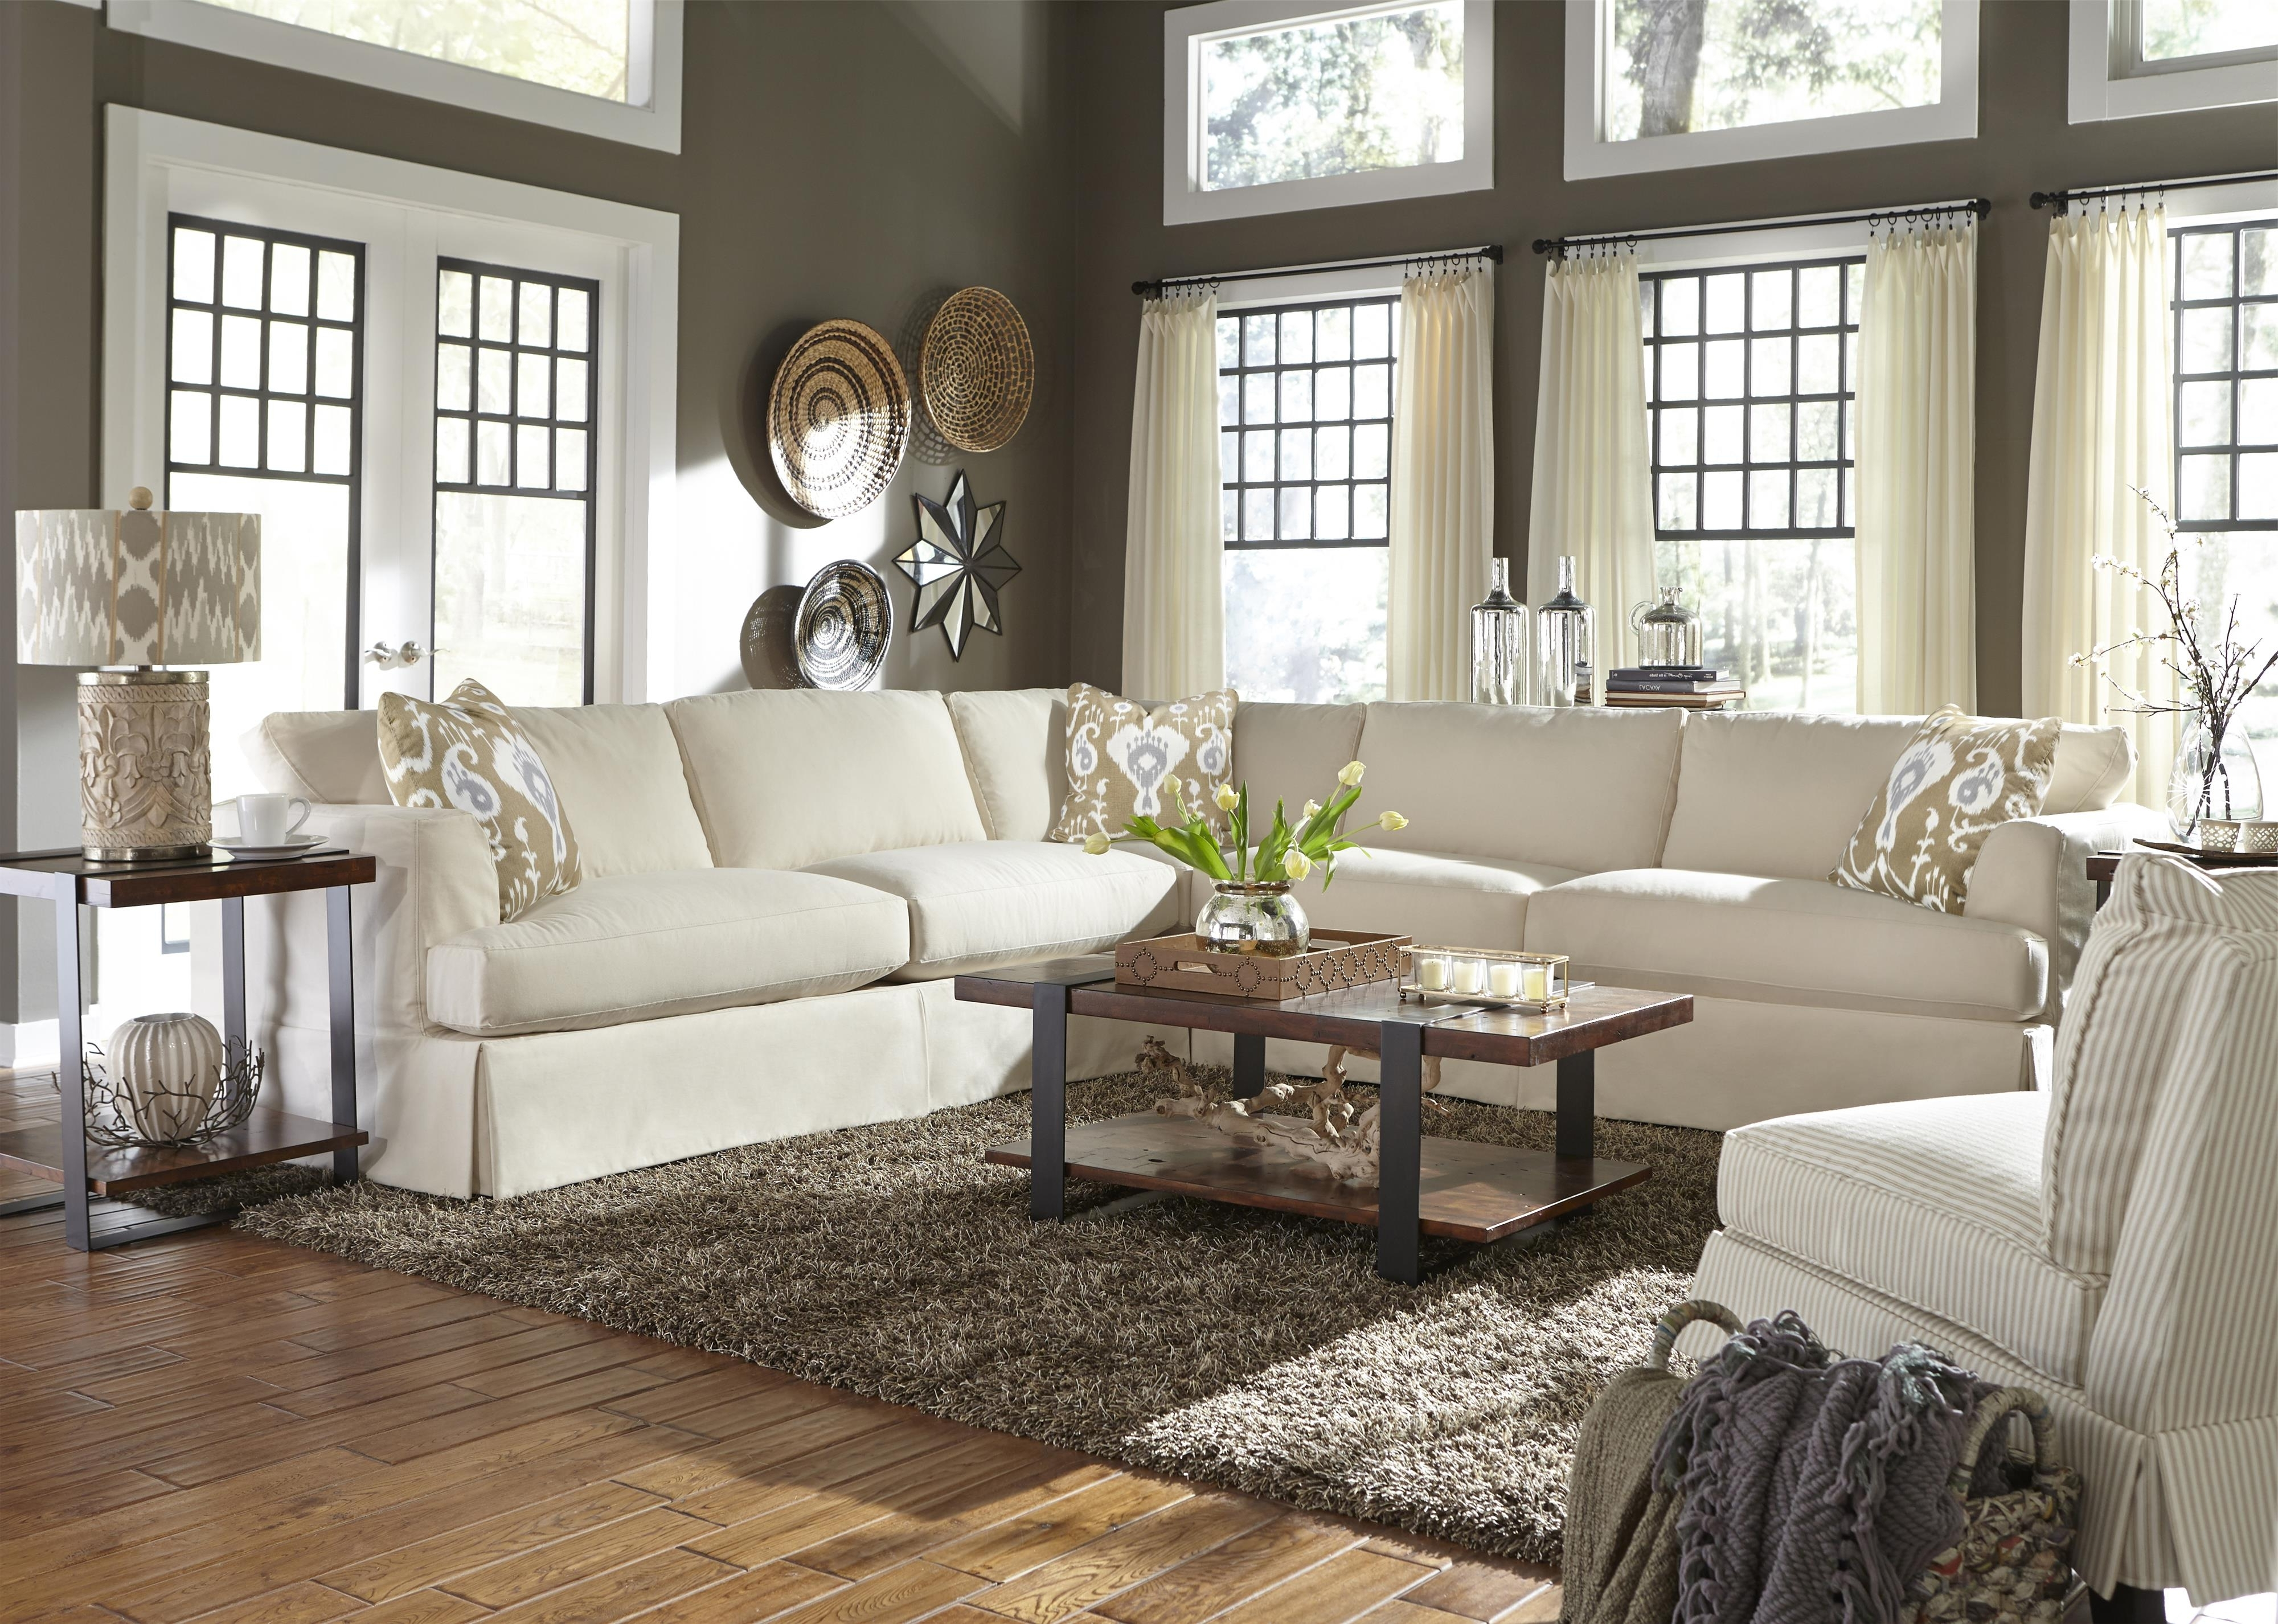 Value Regarding Preferred Down Sectional Sofas (View 14 of 15)